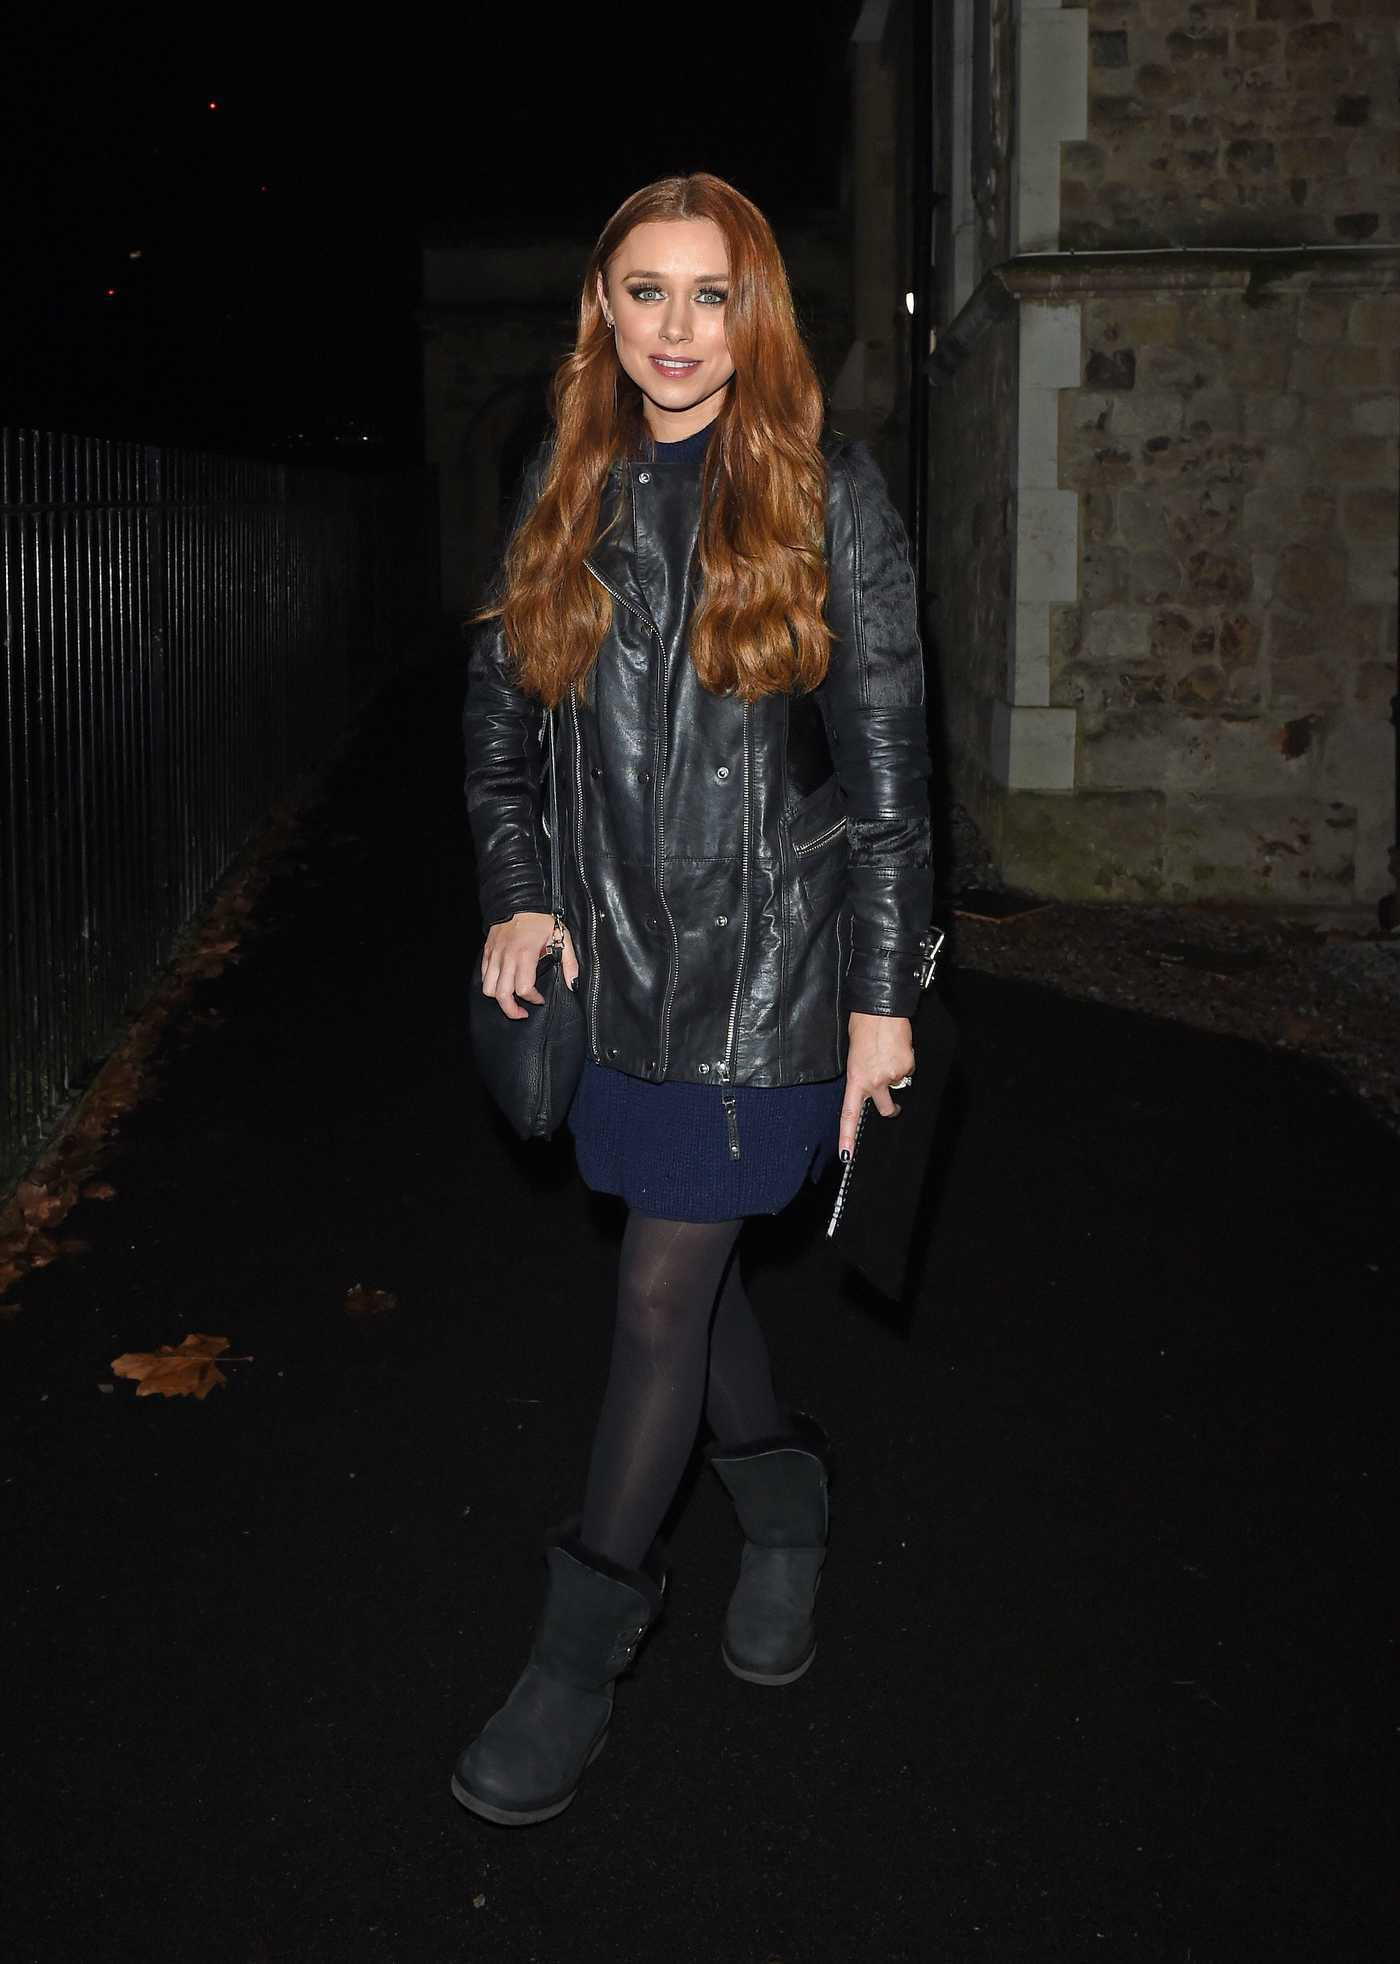 Una Healy Attends Her Gig in London 02/15/2017